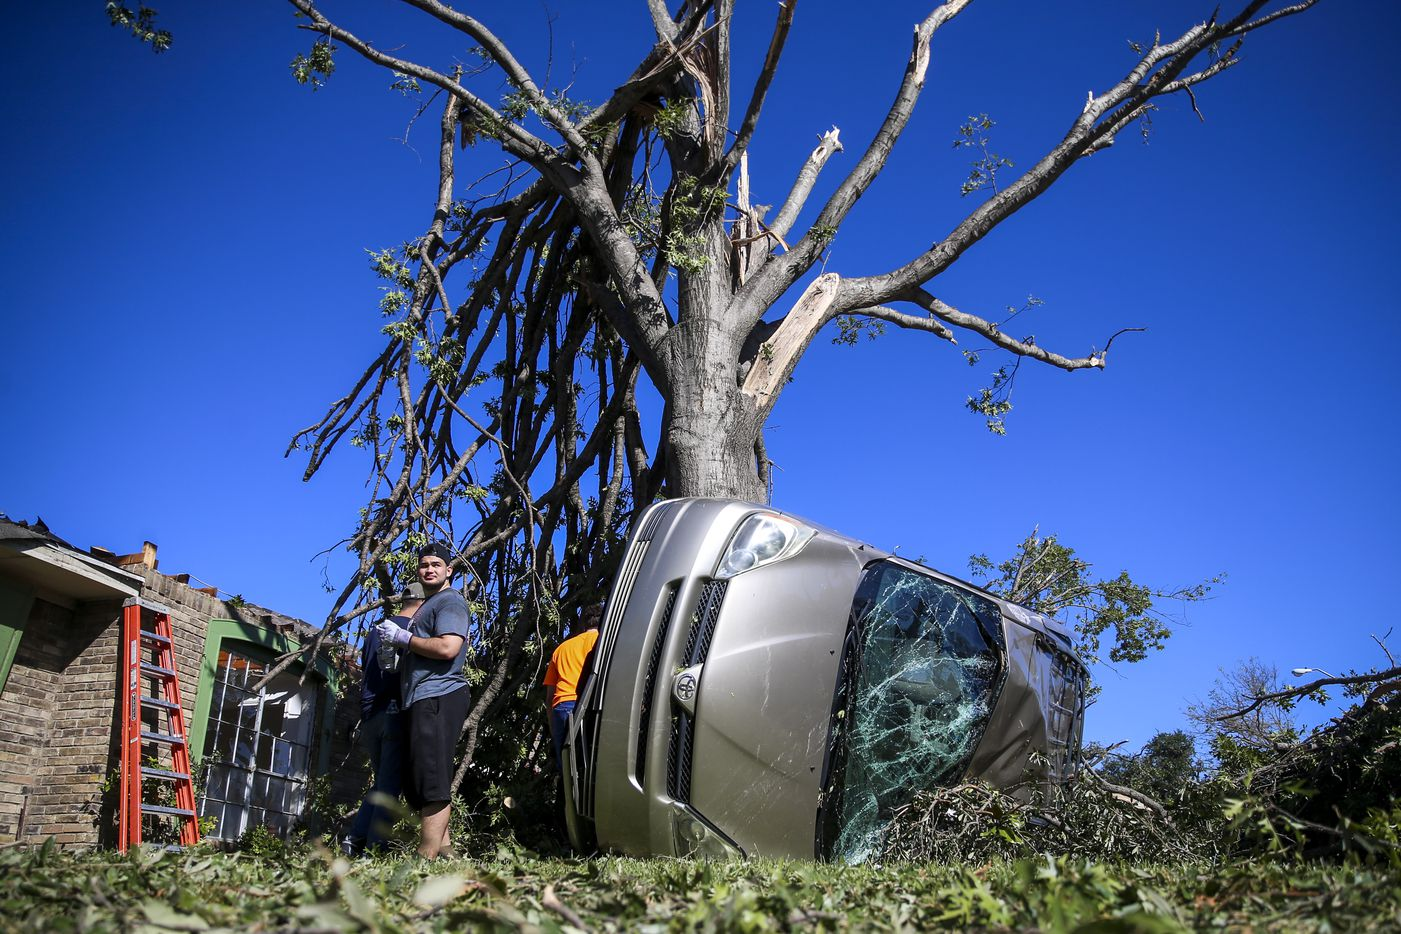 Members of Texas Baptist Men and Islamic Relief USA clear tornado debris on Monday, October 21, 2019 in Richardson, Texas.